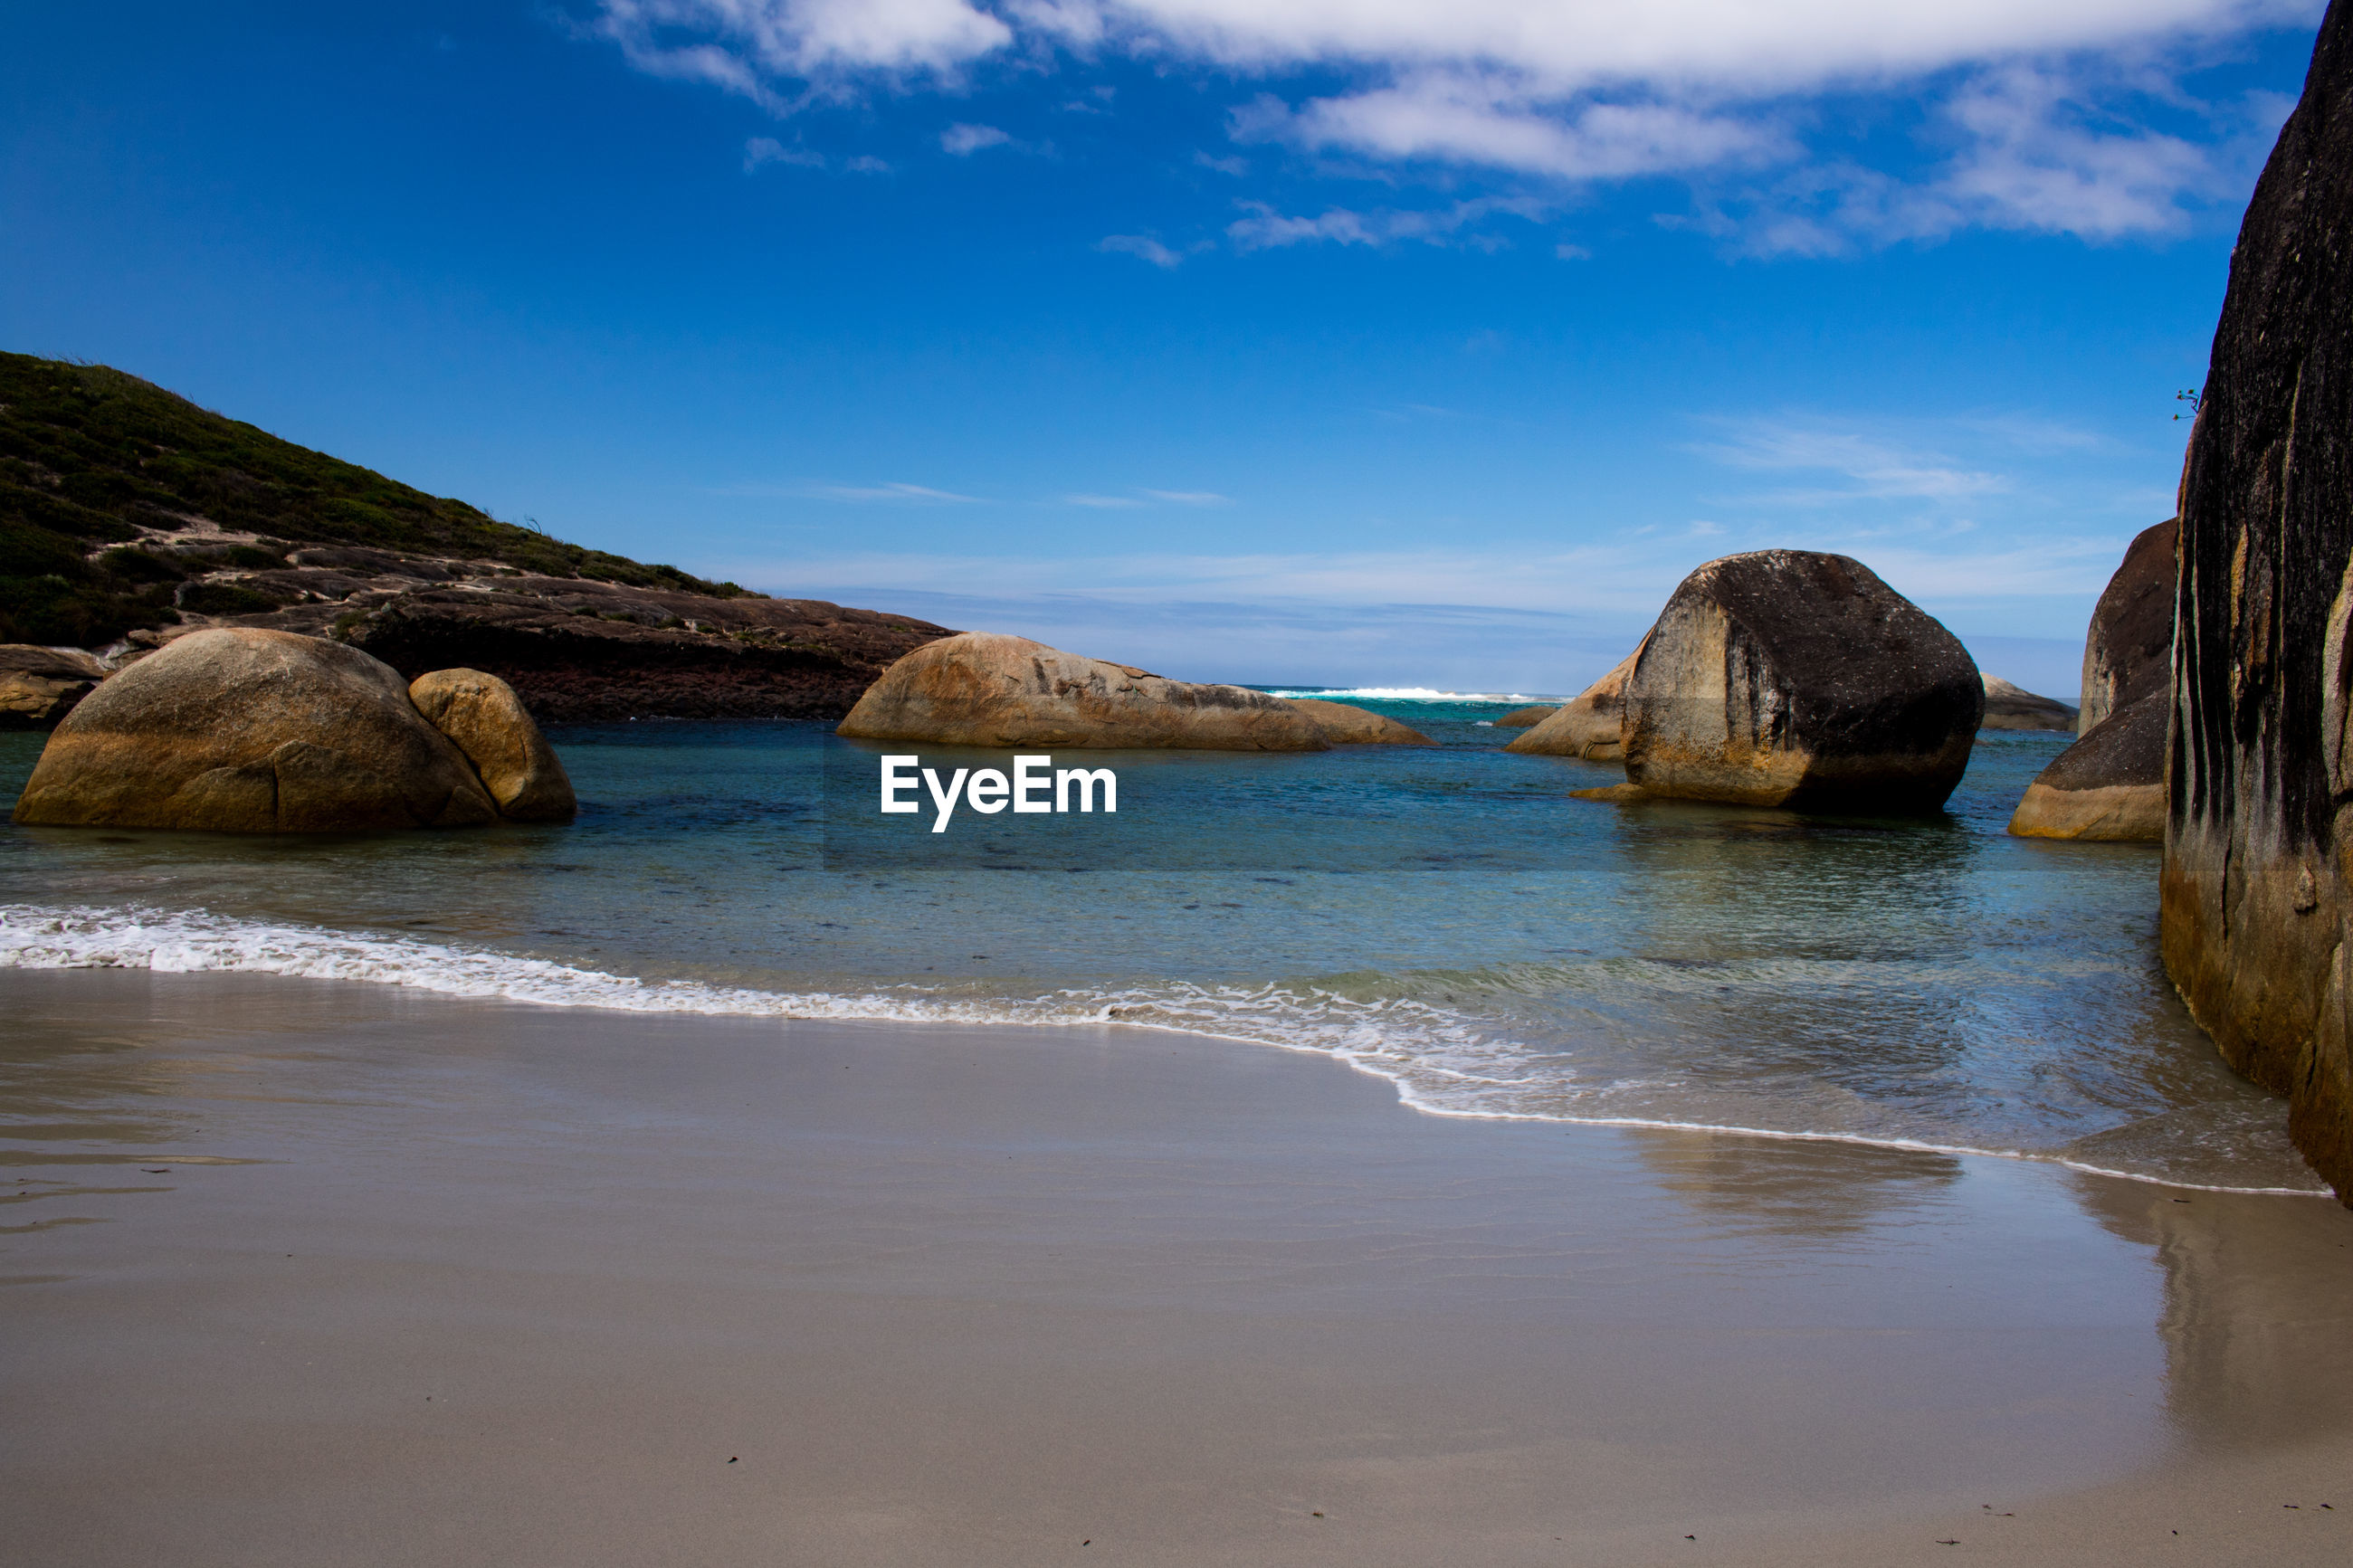 SCENIC VIEW OF SEA WITH ROCKS IN BACKGROUND